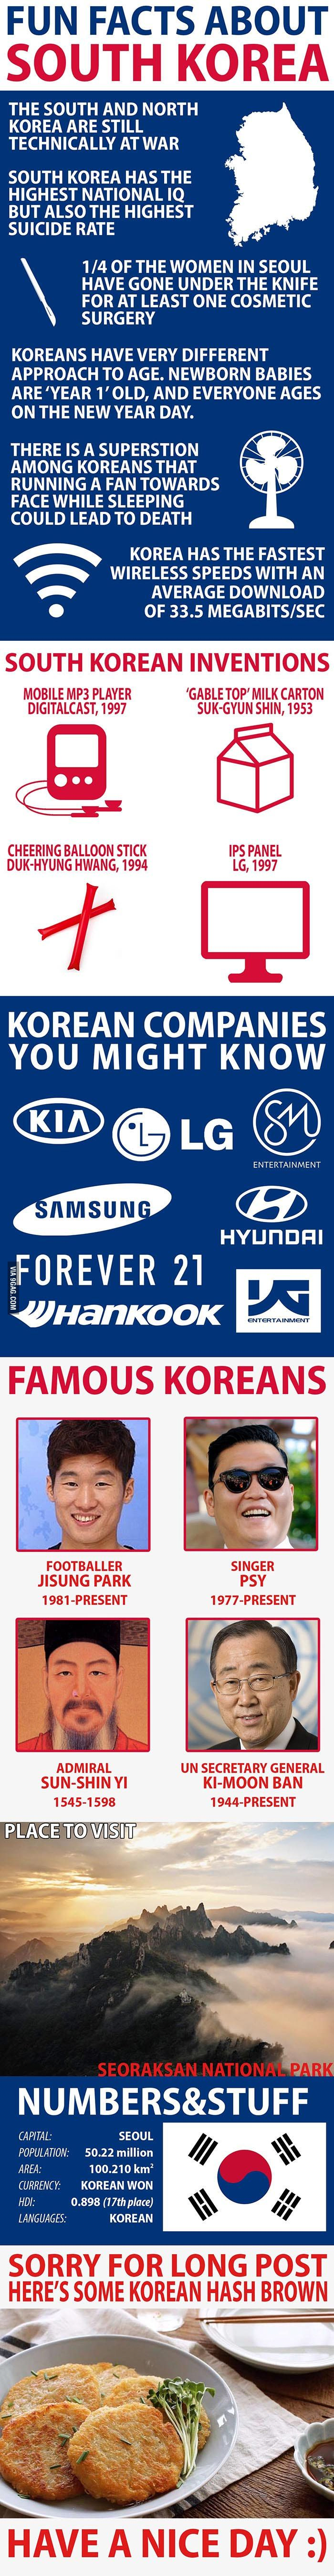 interesting facts about south korea 2 south korean men like to make the most of their appearances and, as such, it is believed that almost a quarter of men use makeup as part of their daily routine if you have any more interesting 'facts' regarding south korea then do share them with us.